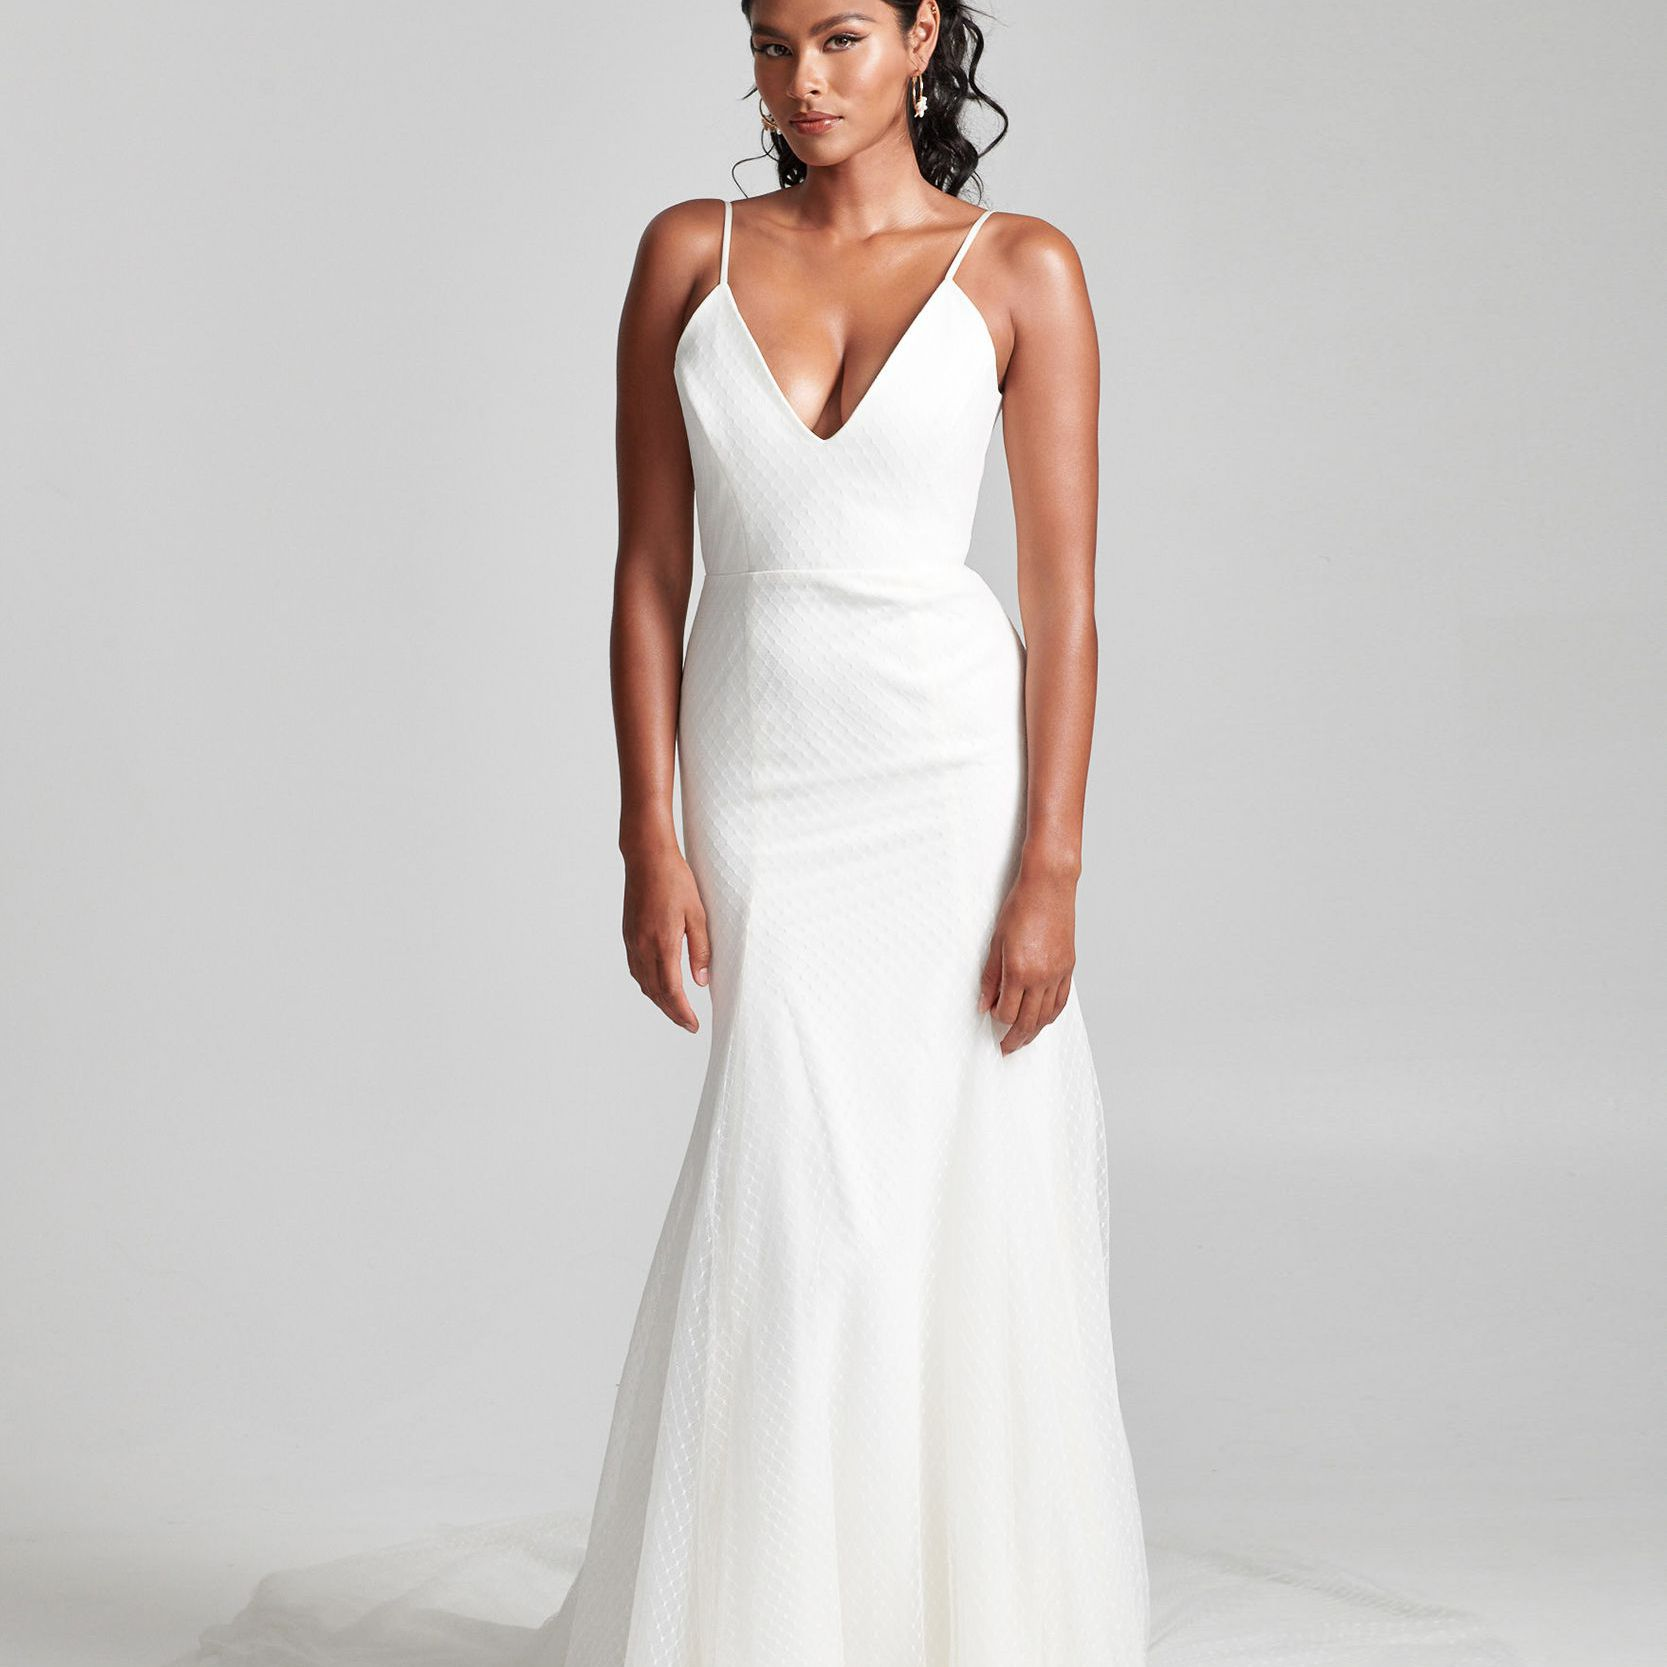 Model in spaghetti strap v-neck wedding dress with tulle